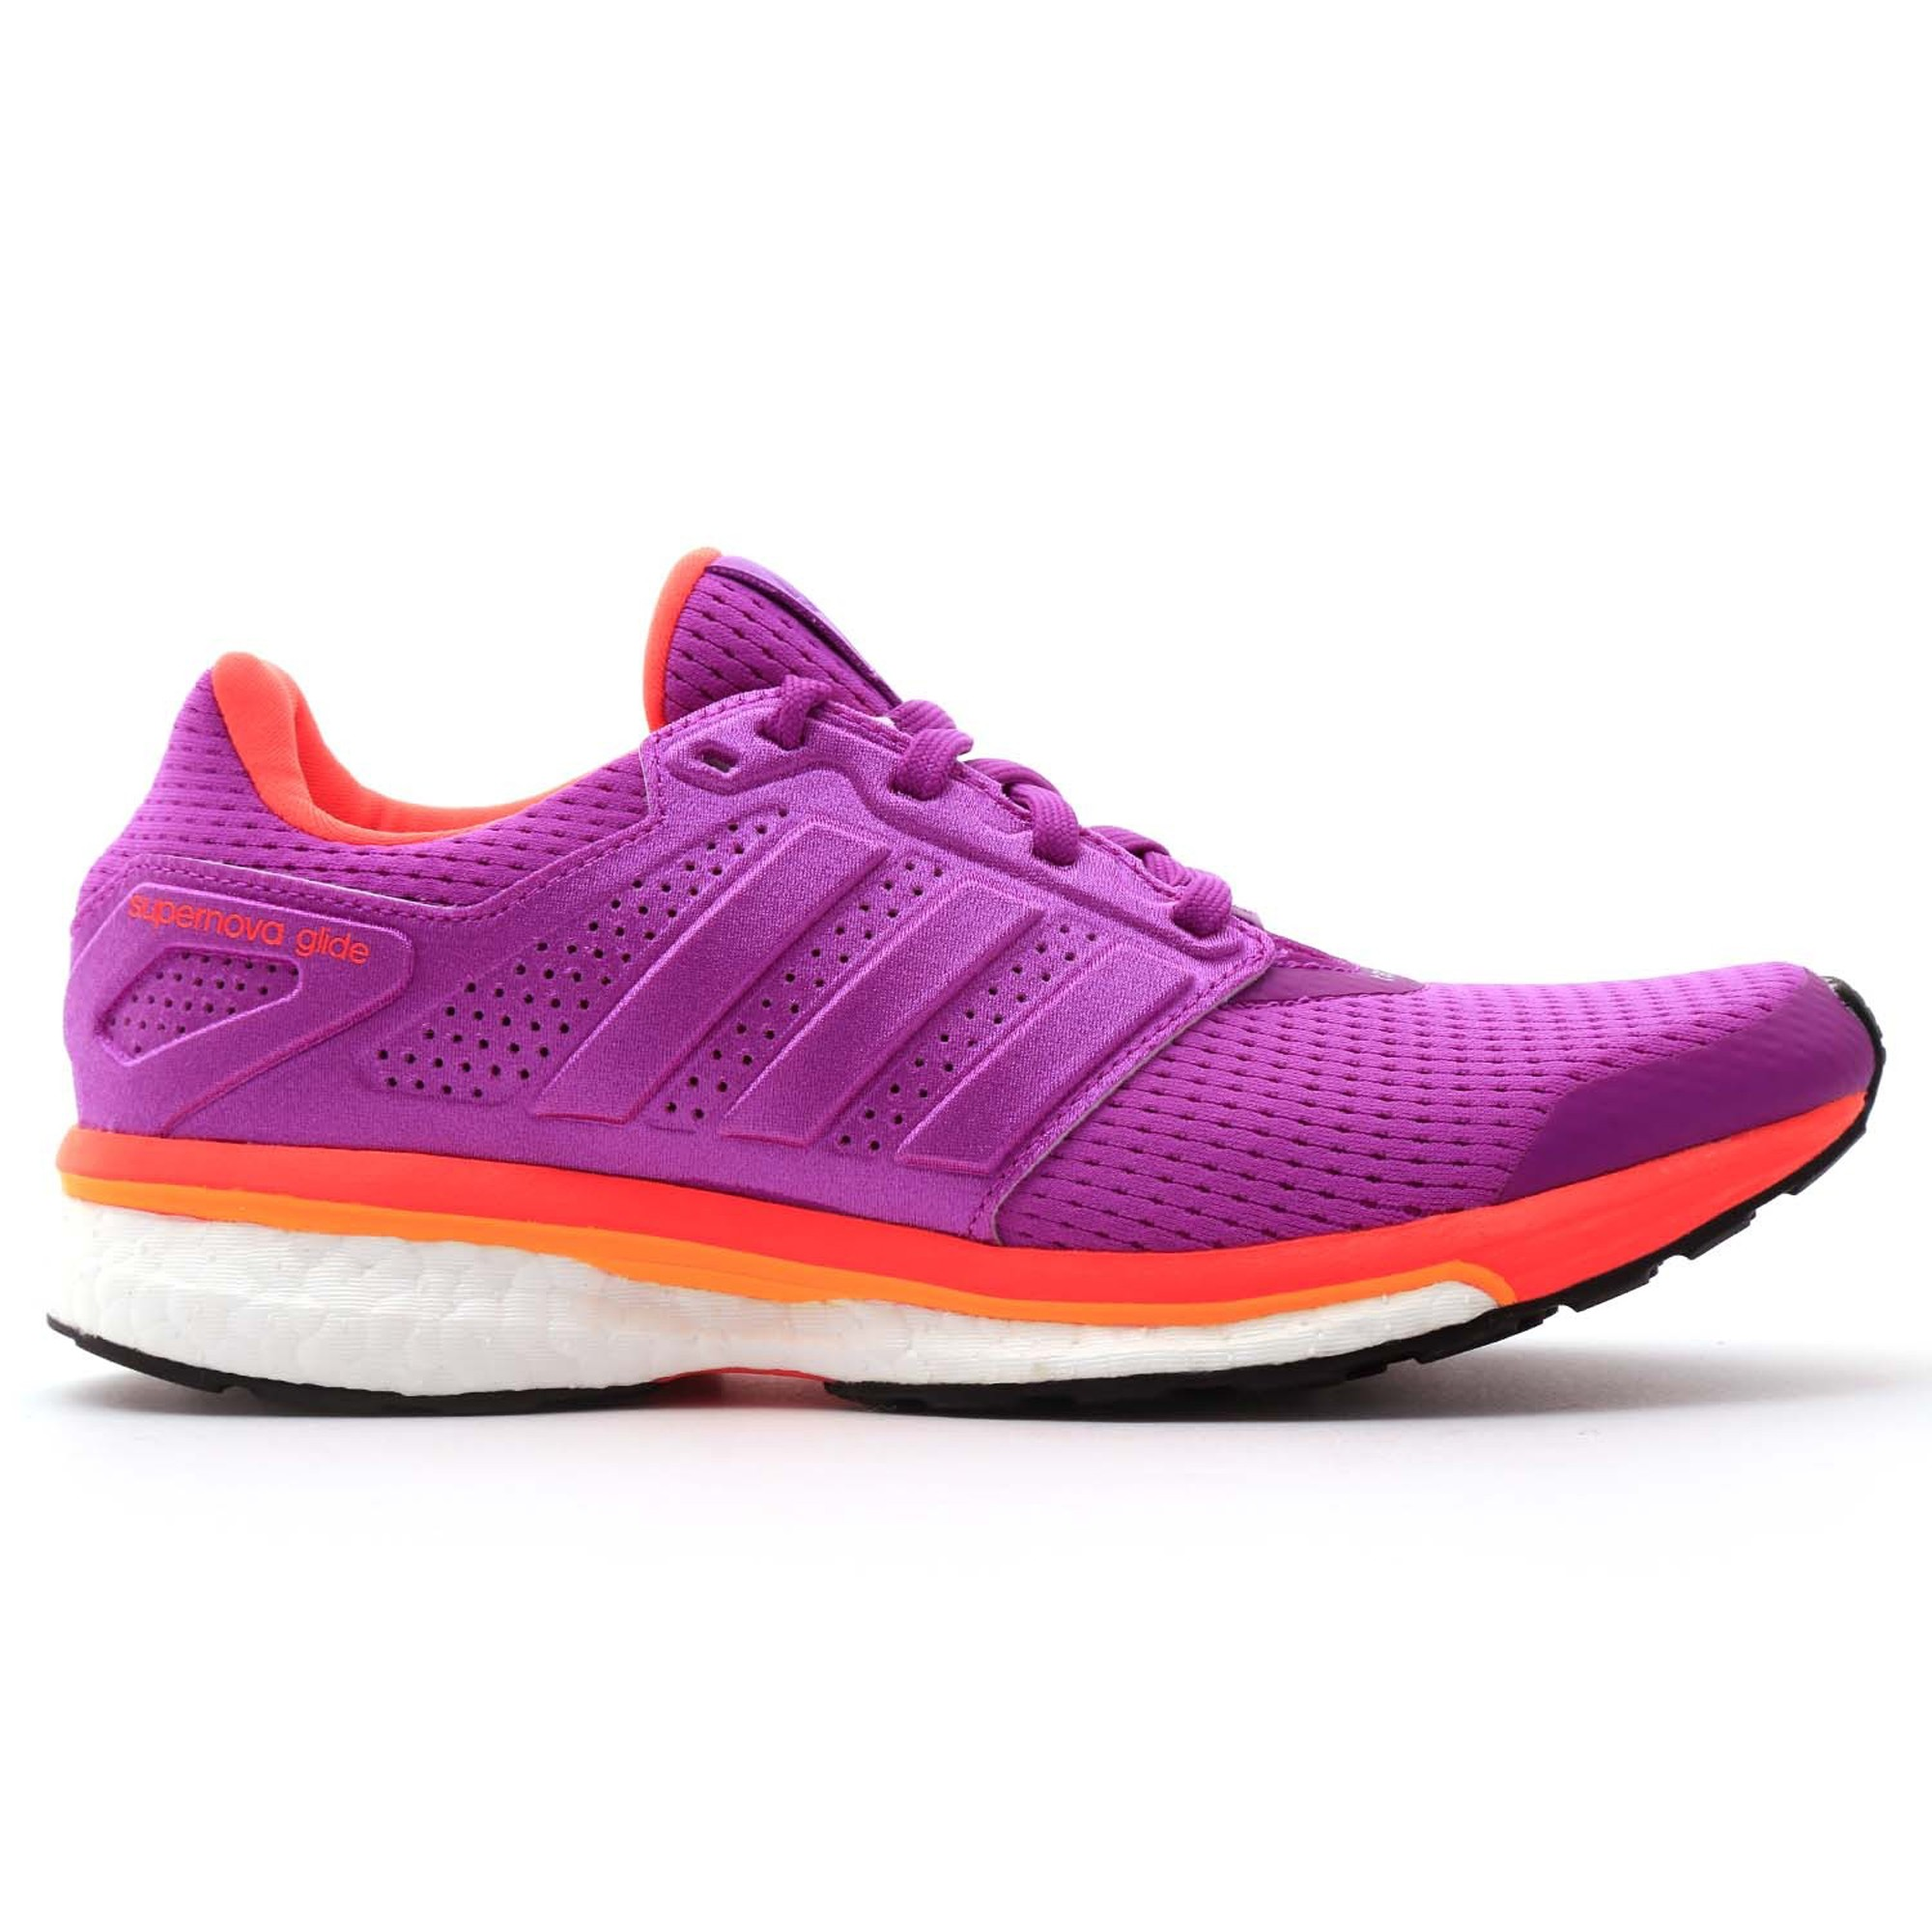 3f7a7900e6e79 Adidas Supernova Glide 8 Women s Running on Carousell